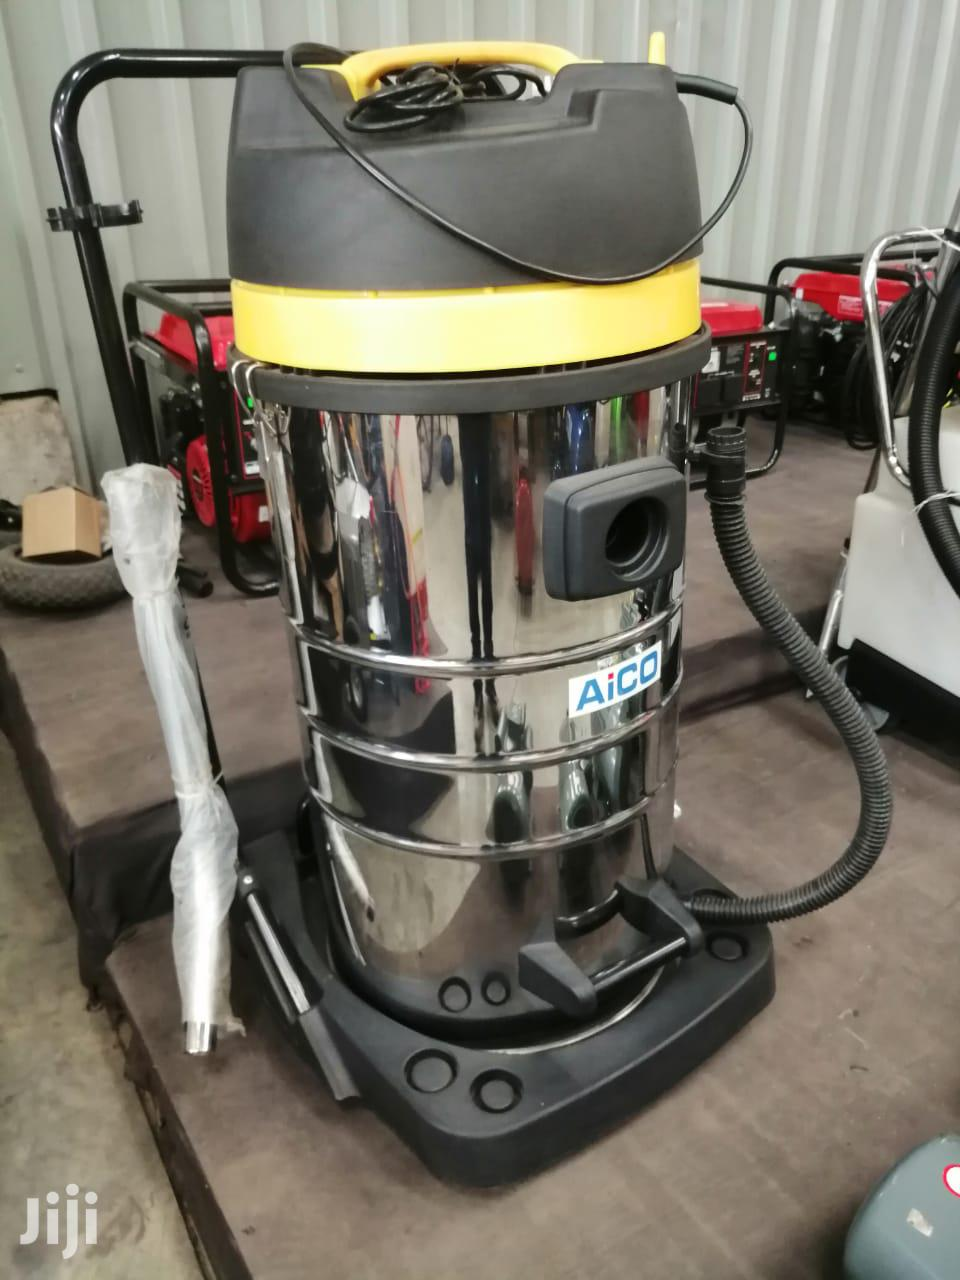 Brand New 100l Wet and Dry Vacuum Cleaner.